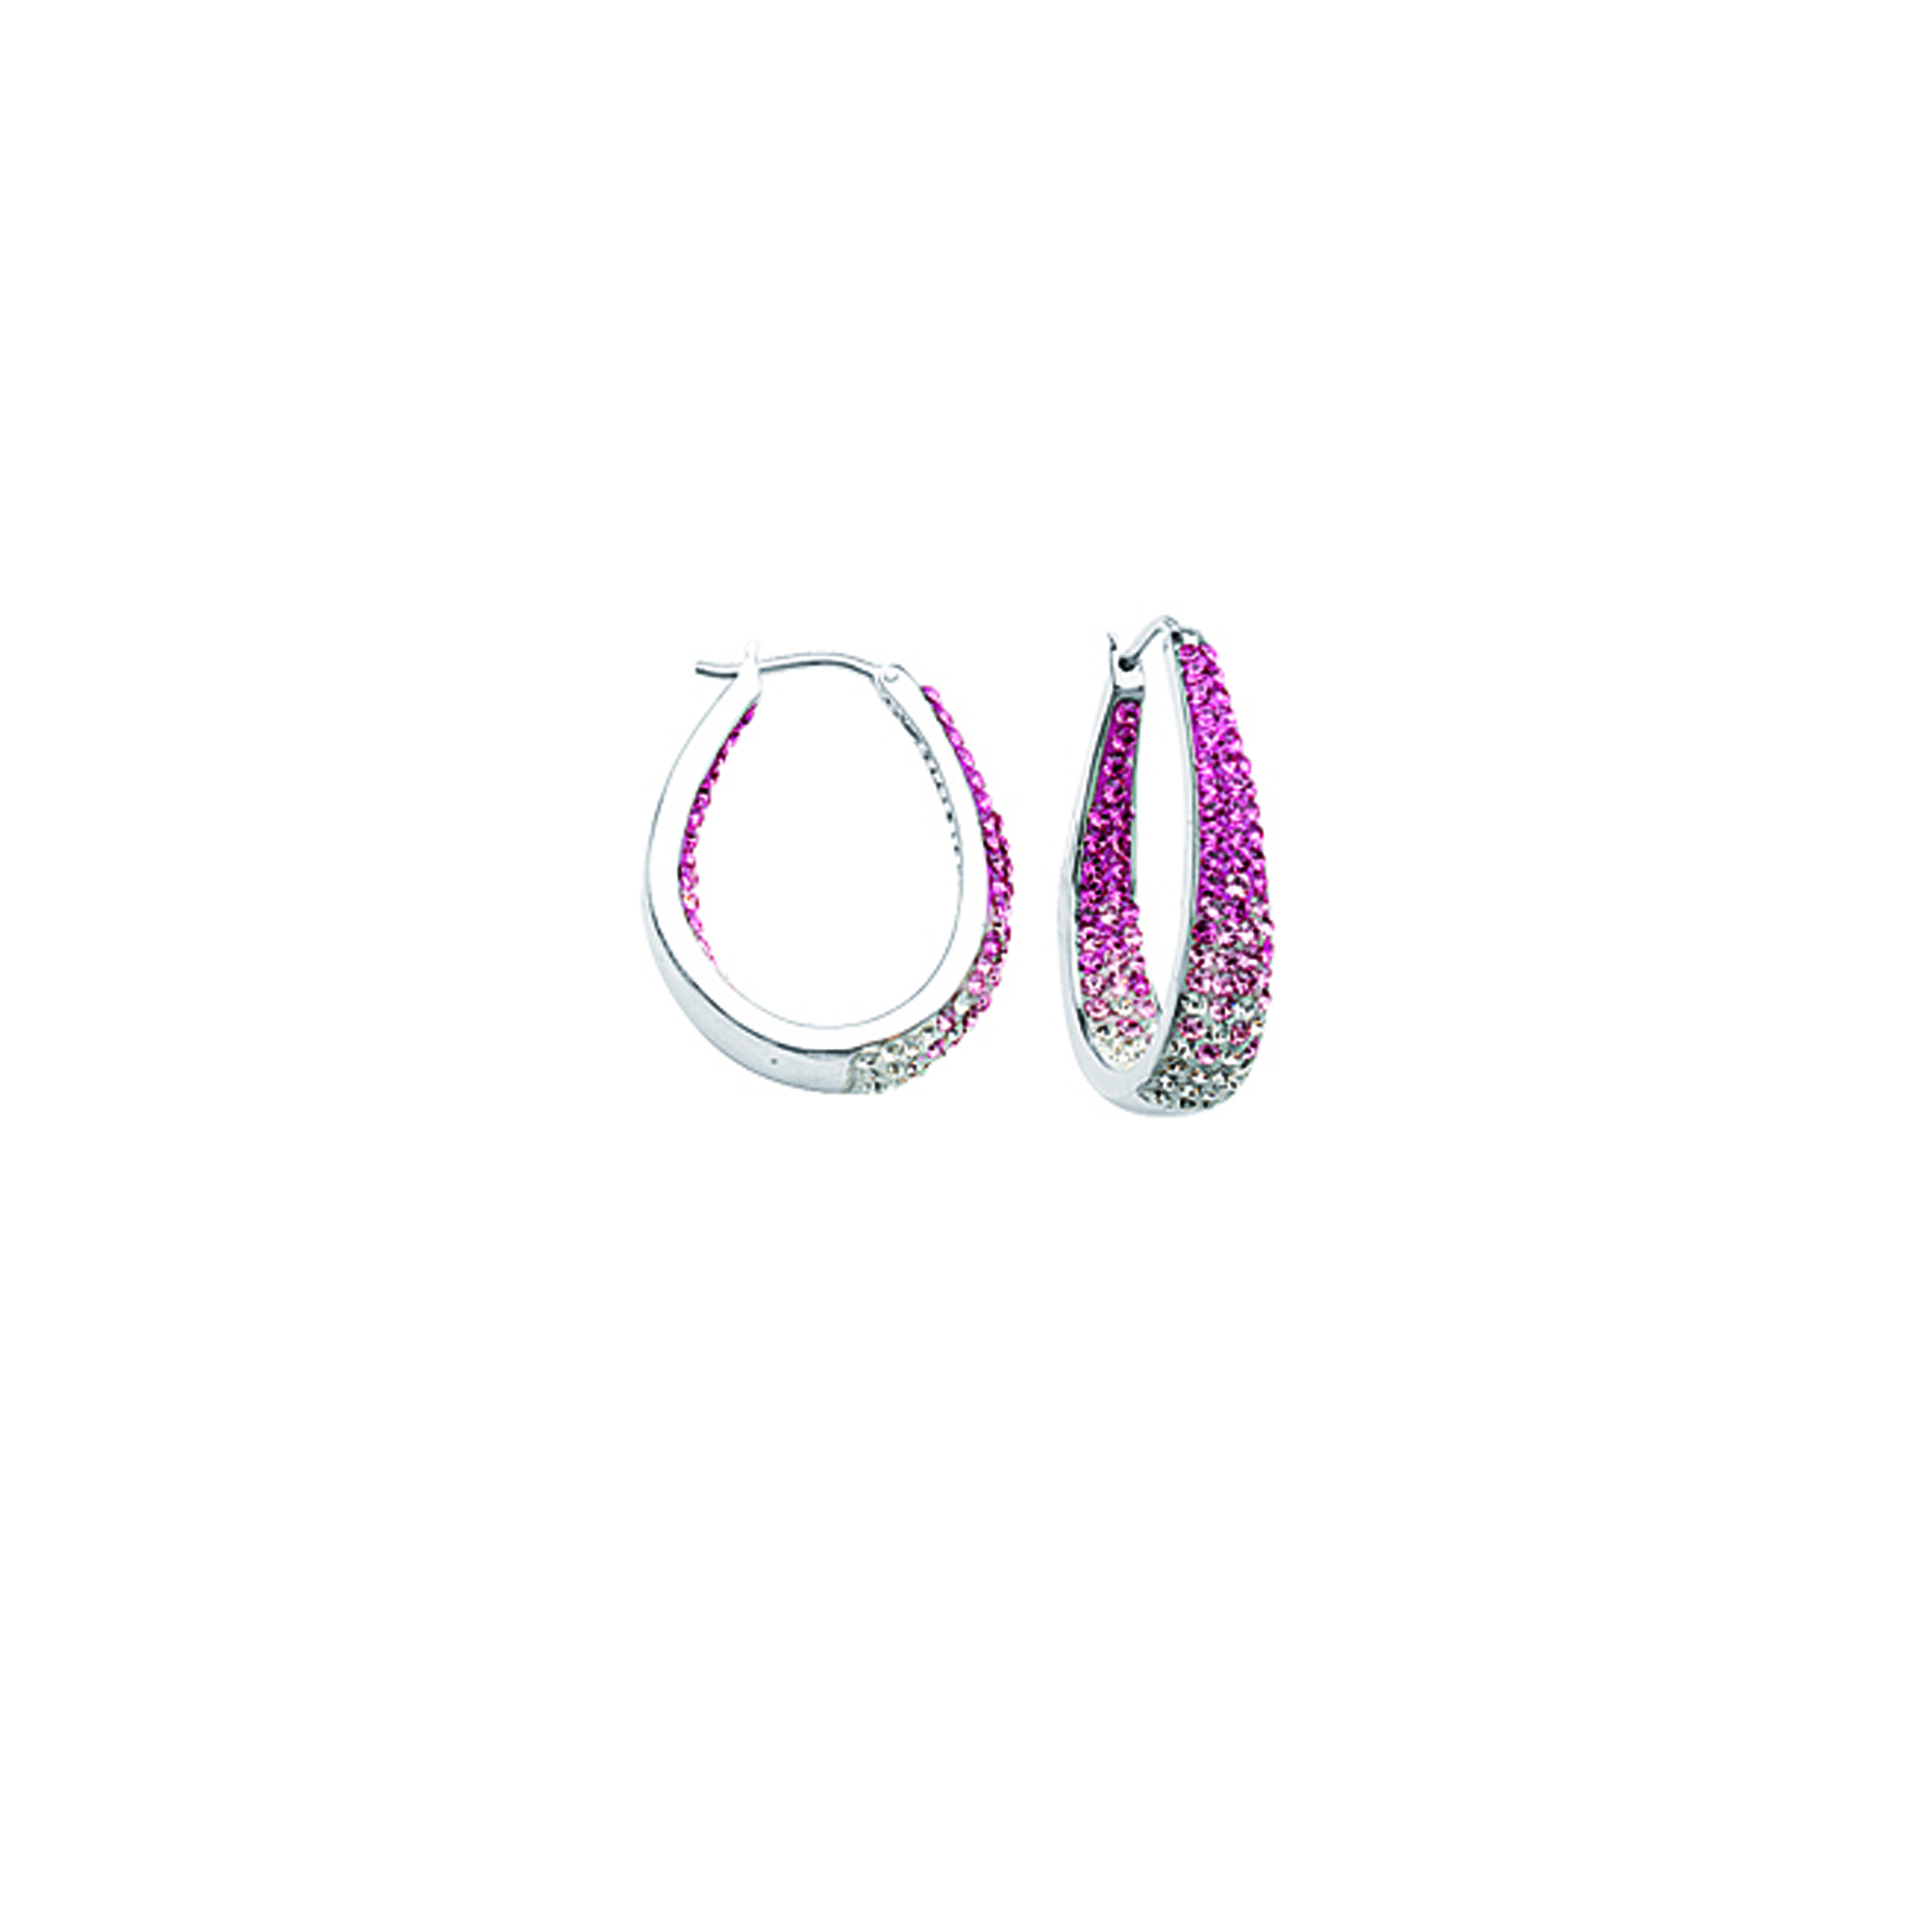 Hoop Earrings, Ss Round/Tapered In/Out Rose To Wht Ear